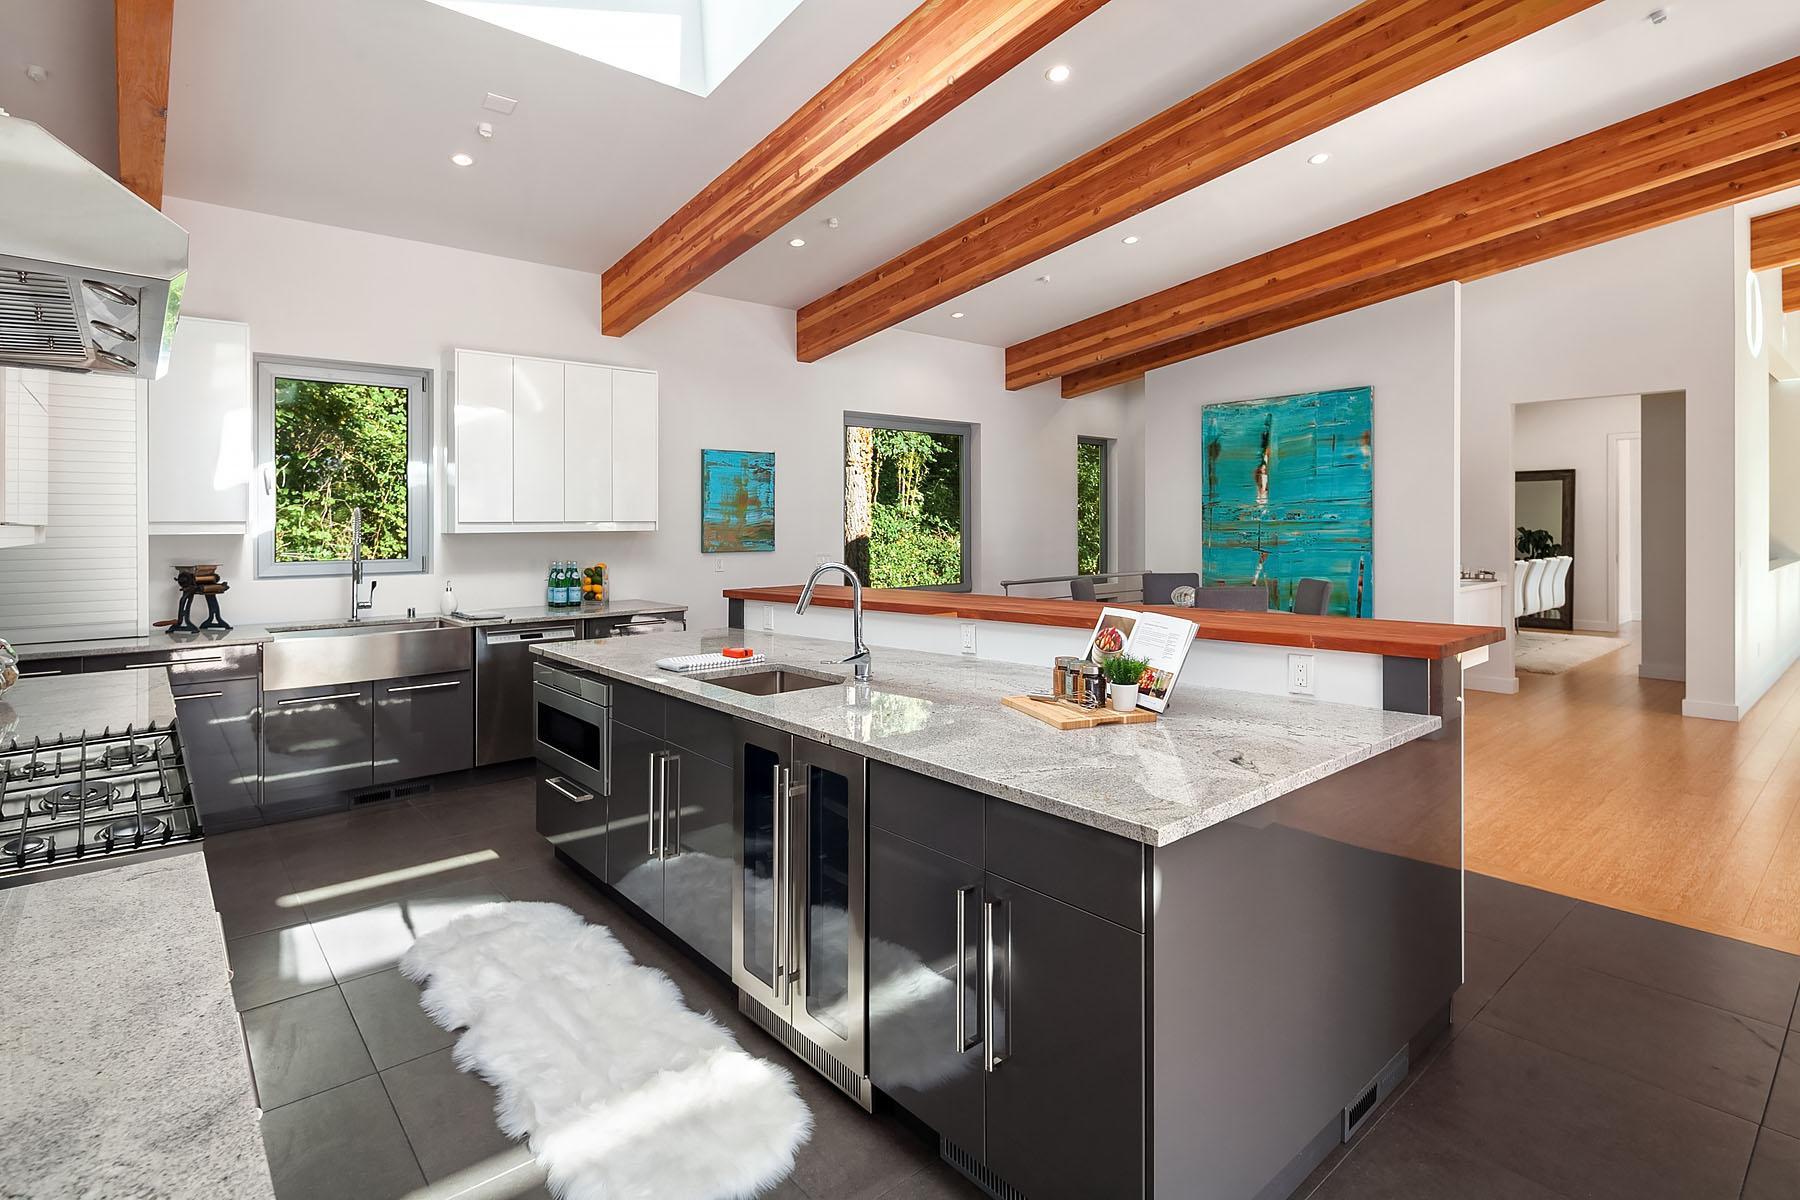 "This beautiful, 5,050 square foot, light-filled NW modern is a 4 bedroom, 4.5 bathroom abode with soaring ceilings, exposed wood beams, a chefs kitchen, covered deck, huge dining room and office/den. The home was custom designed by renowned Medici Architects and is BATHED in natural light. Aka the best light.{&nbsp;}<a  href=""https://www.windermere.com/listing/WA/Bellevue/1840-100th-Ave-SE-98004/93893636"" target=""_blank"" title=""https://www.windermere.com/listing/WA/Bellevue/1840-100th-Ave-SE-98004/93893636"">Listed by Windermere, this Bellevue home is $2,400,000 (Image courtesy of Windermere)</a>."